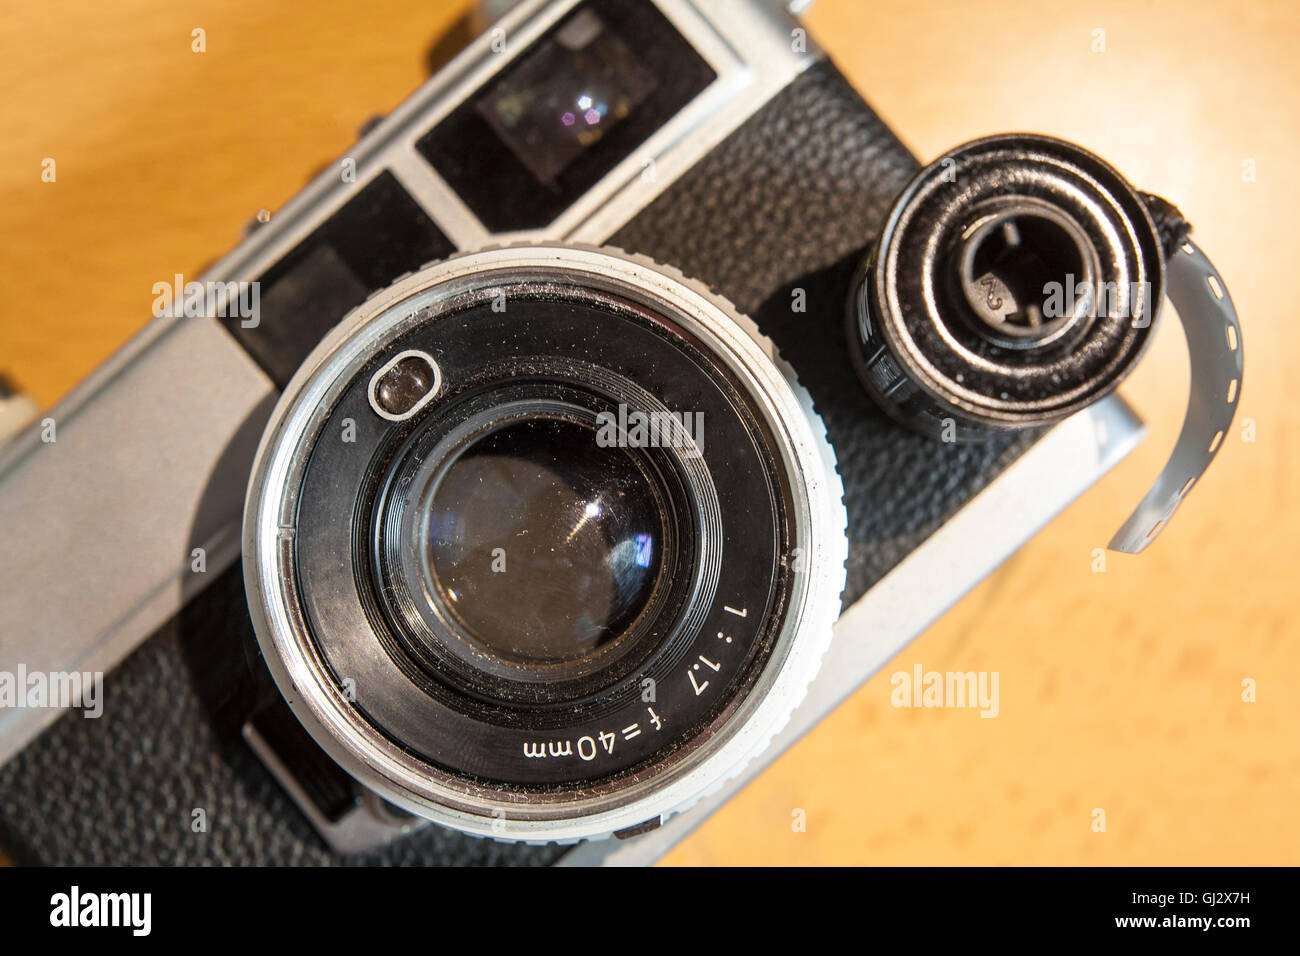 Antique SLR or Reflex camera with film roll over wooden surface - Stock Image